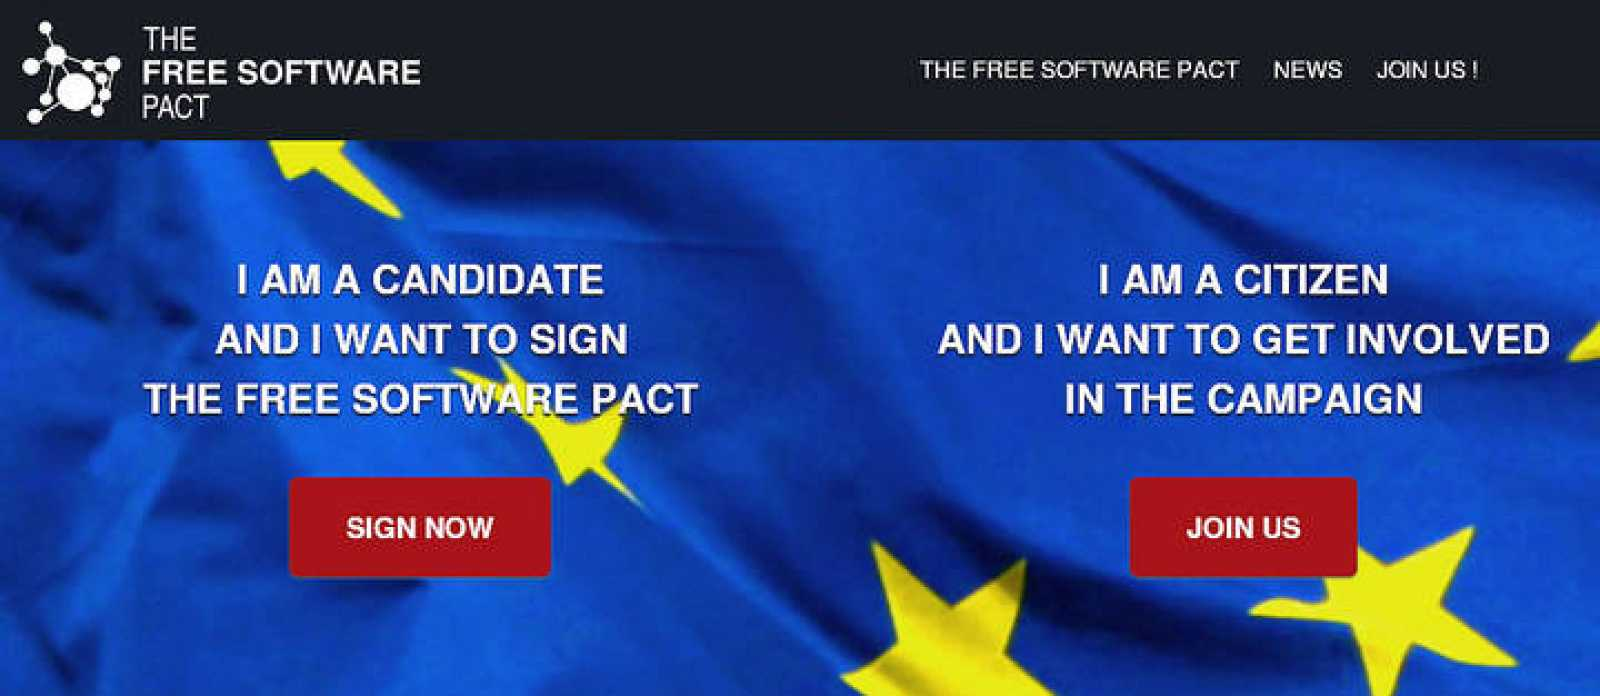 Portada de la web europea Freesoftwarepact.eu.